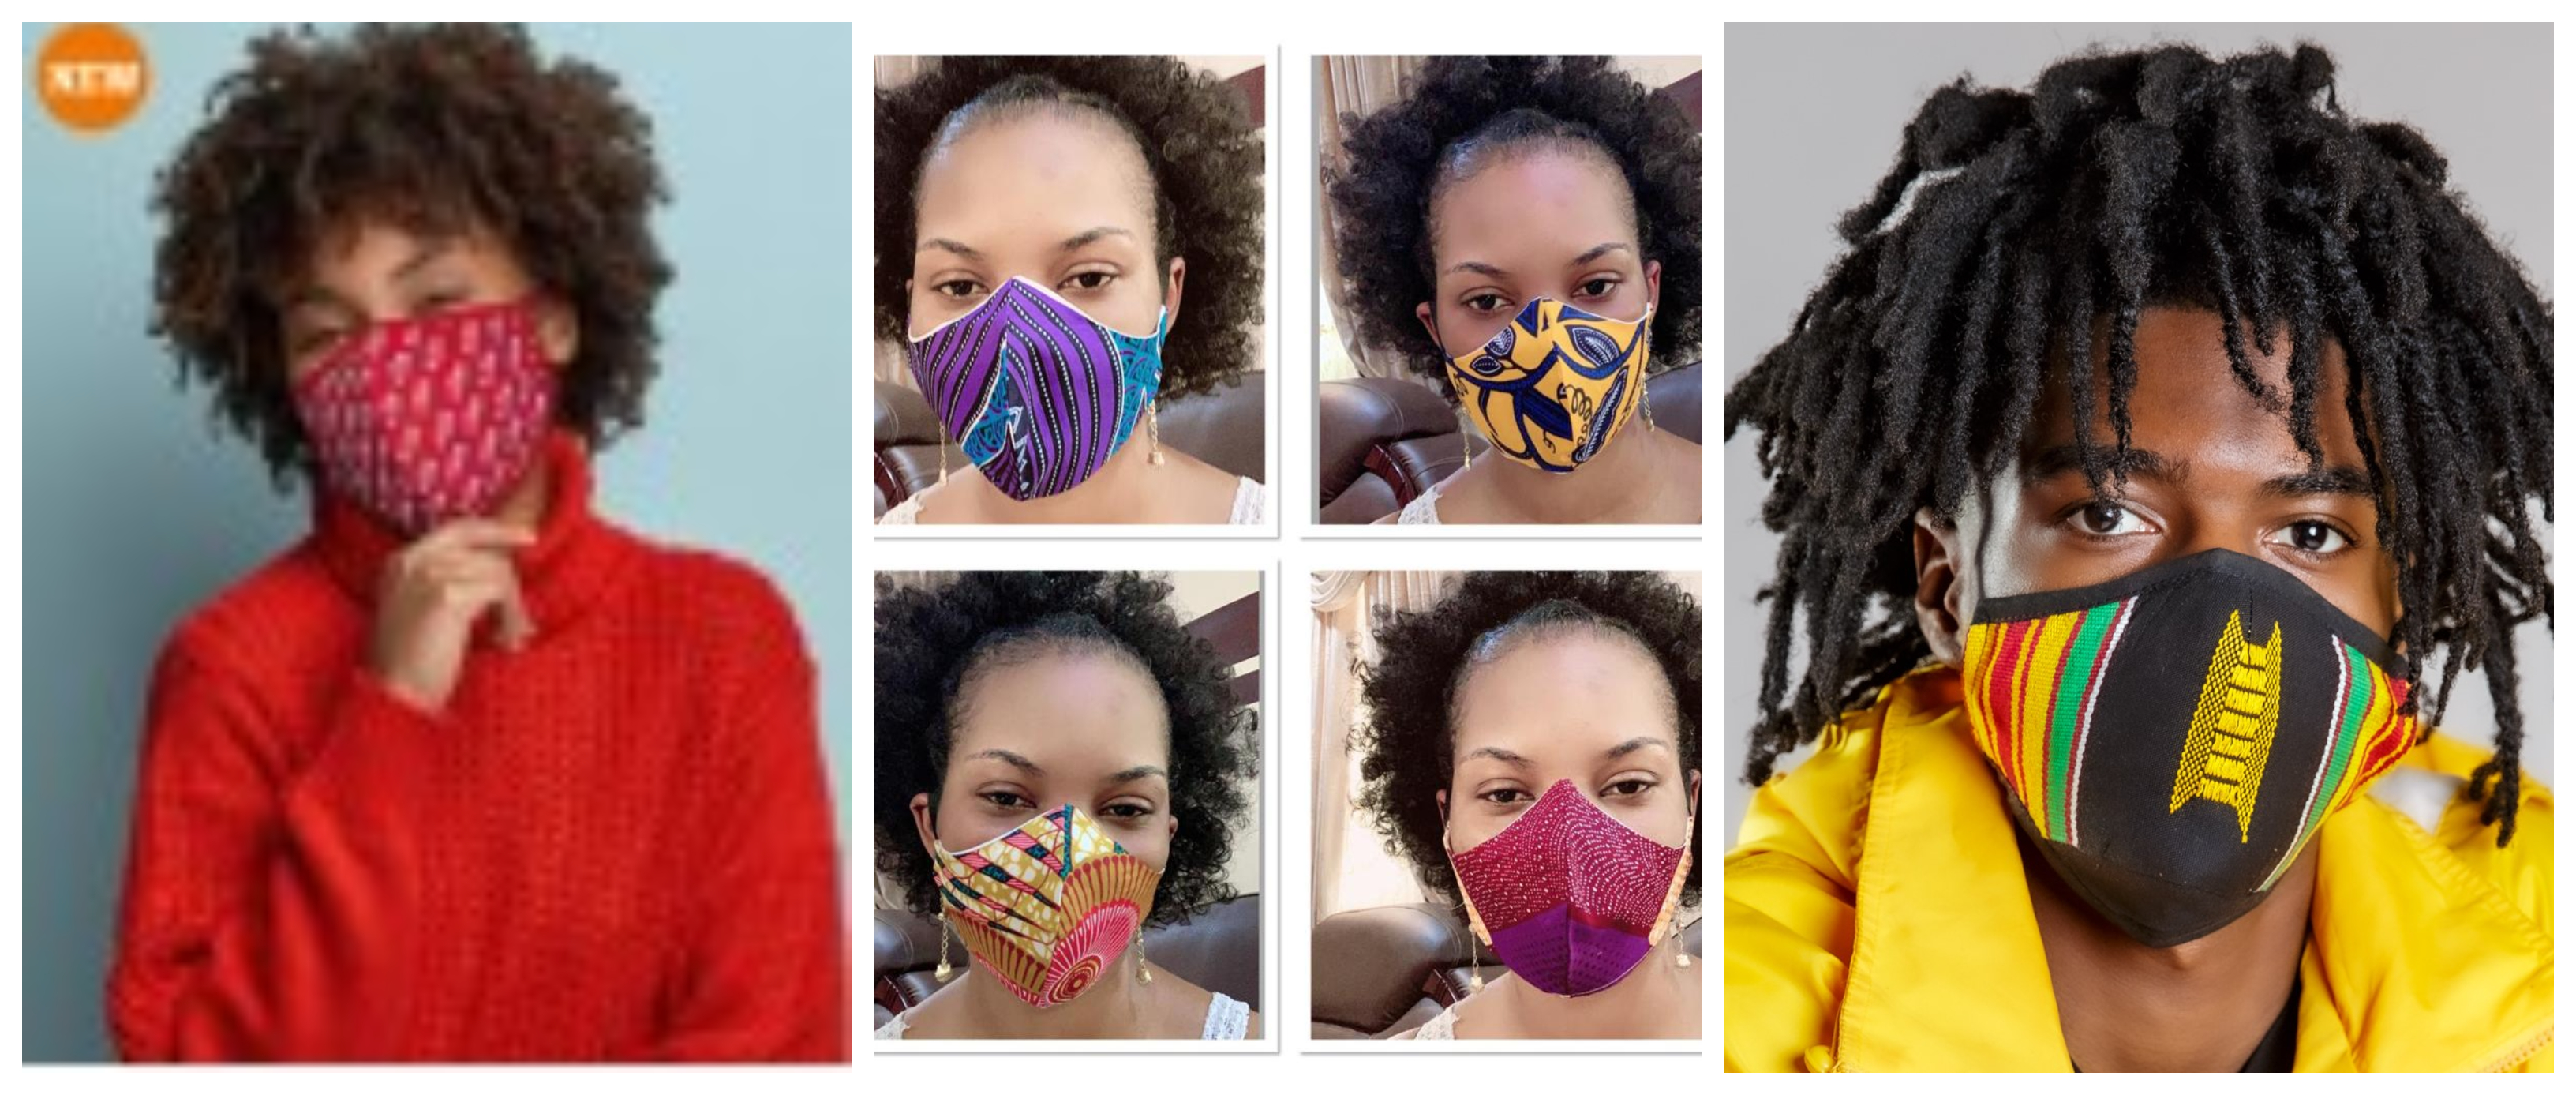 face-mask-collage-a-befunky-collage.jpg